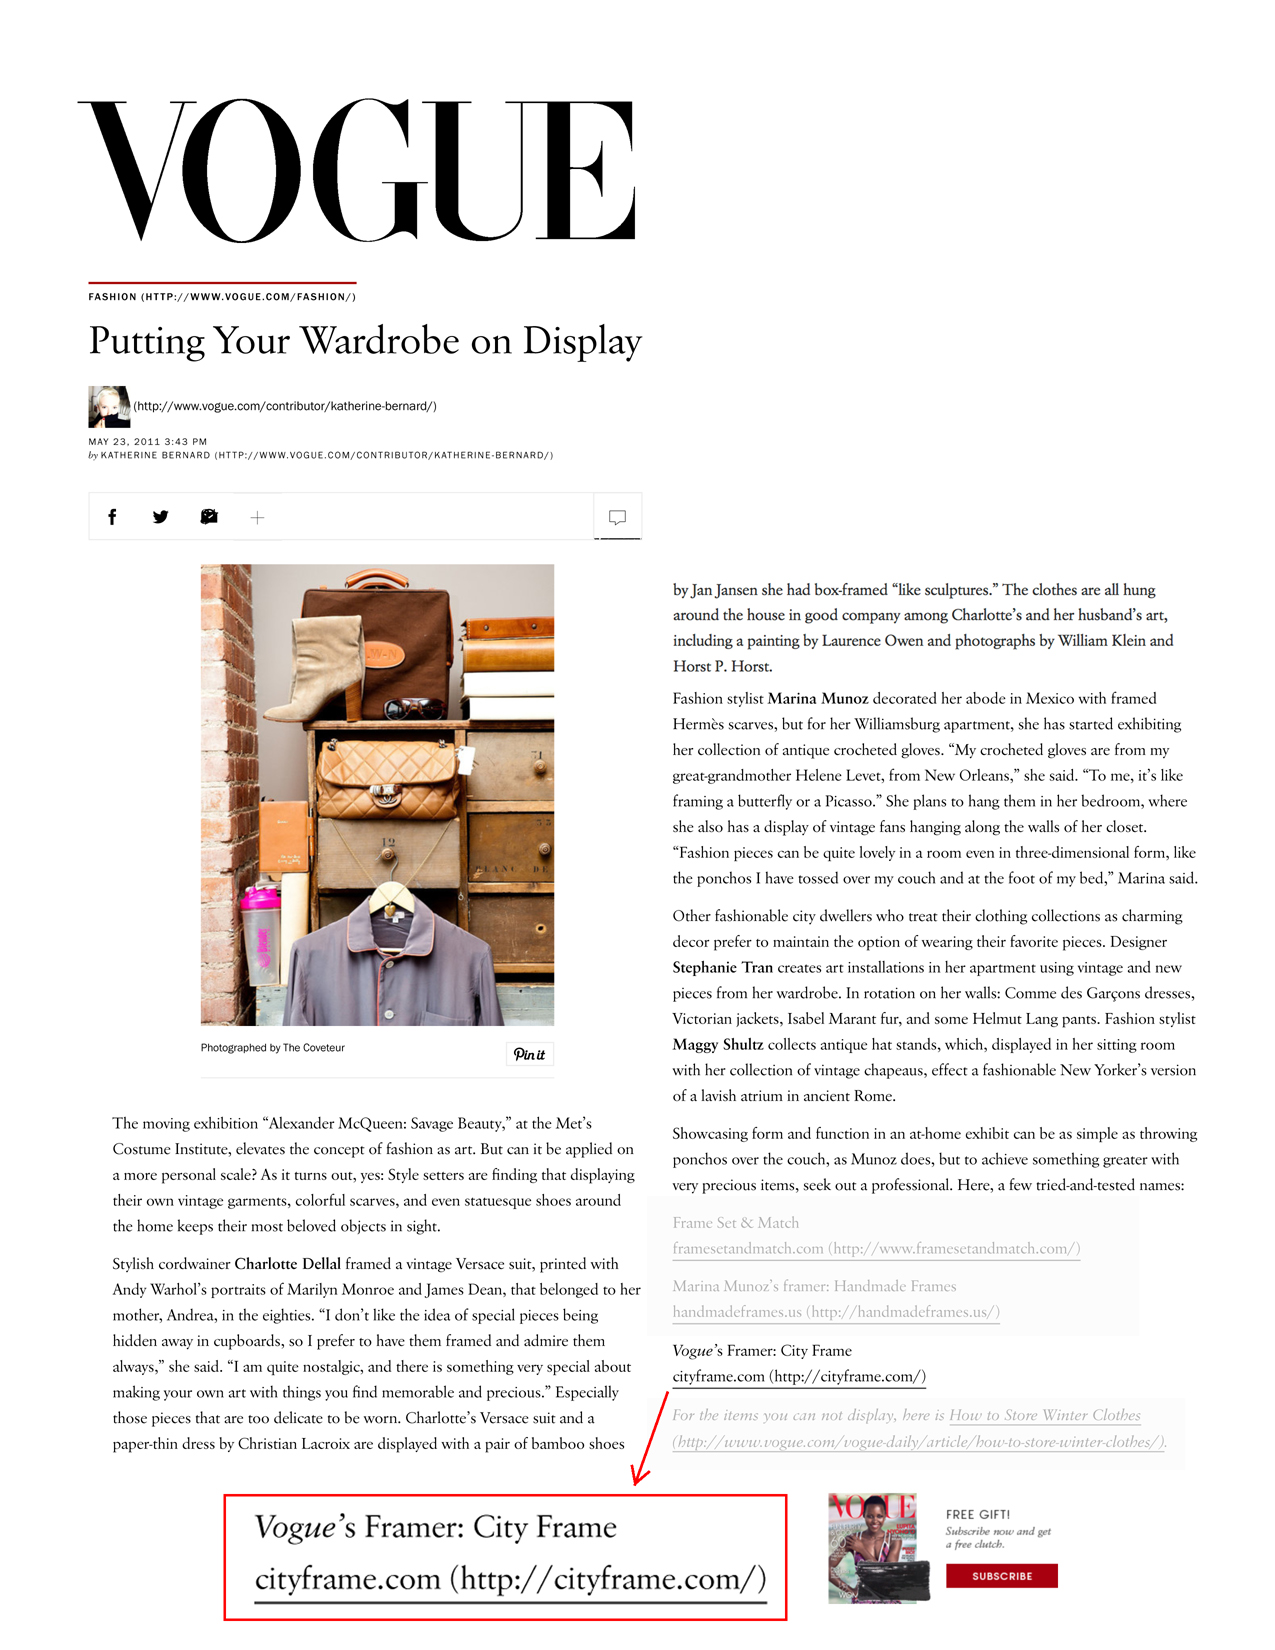 Putting Your Wardrobe on Display - Vogue-1a.jpg